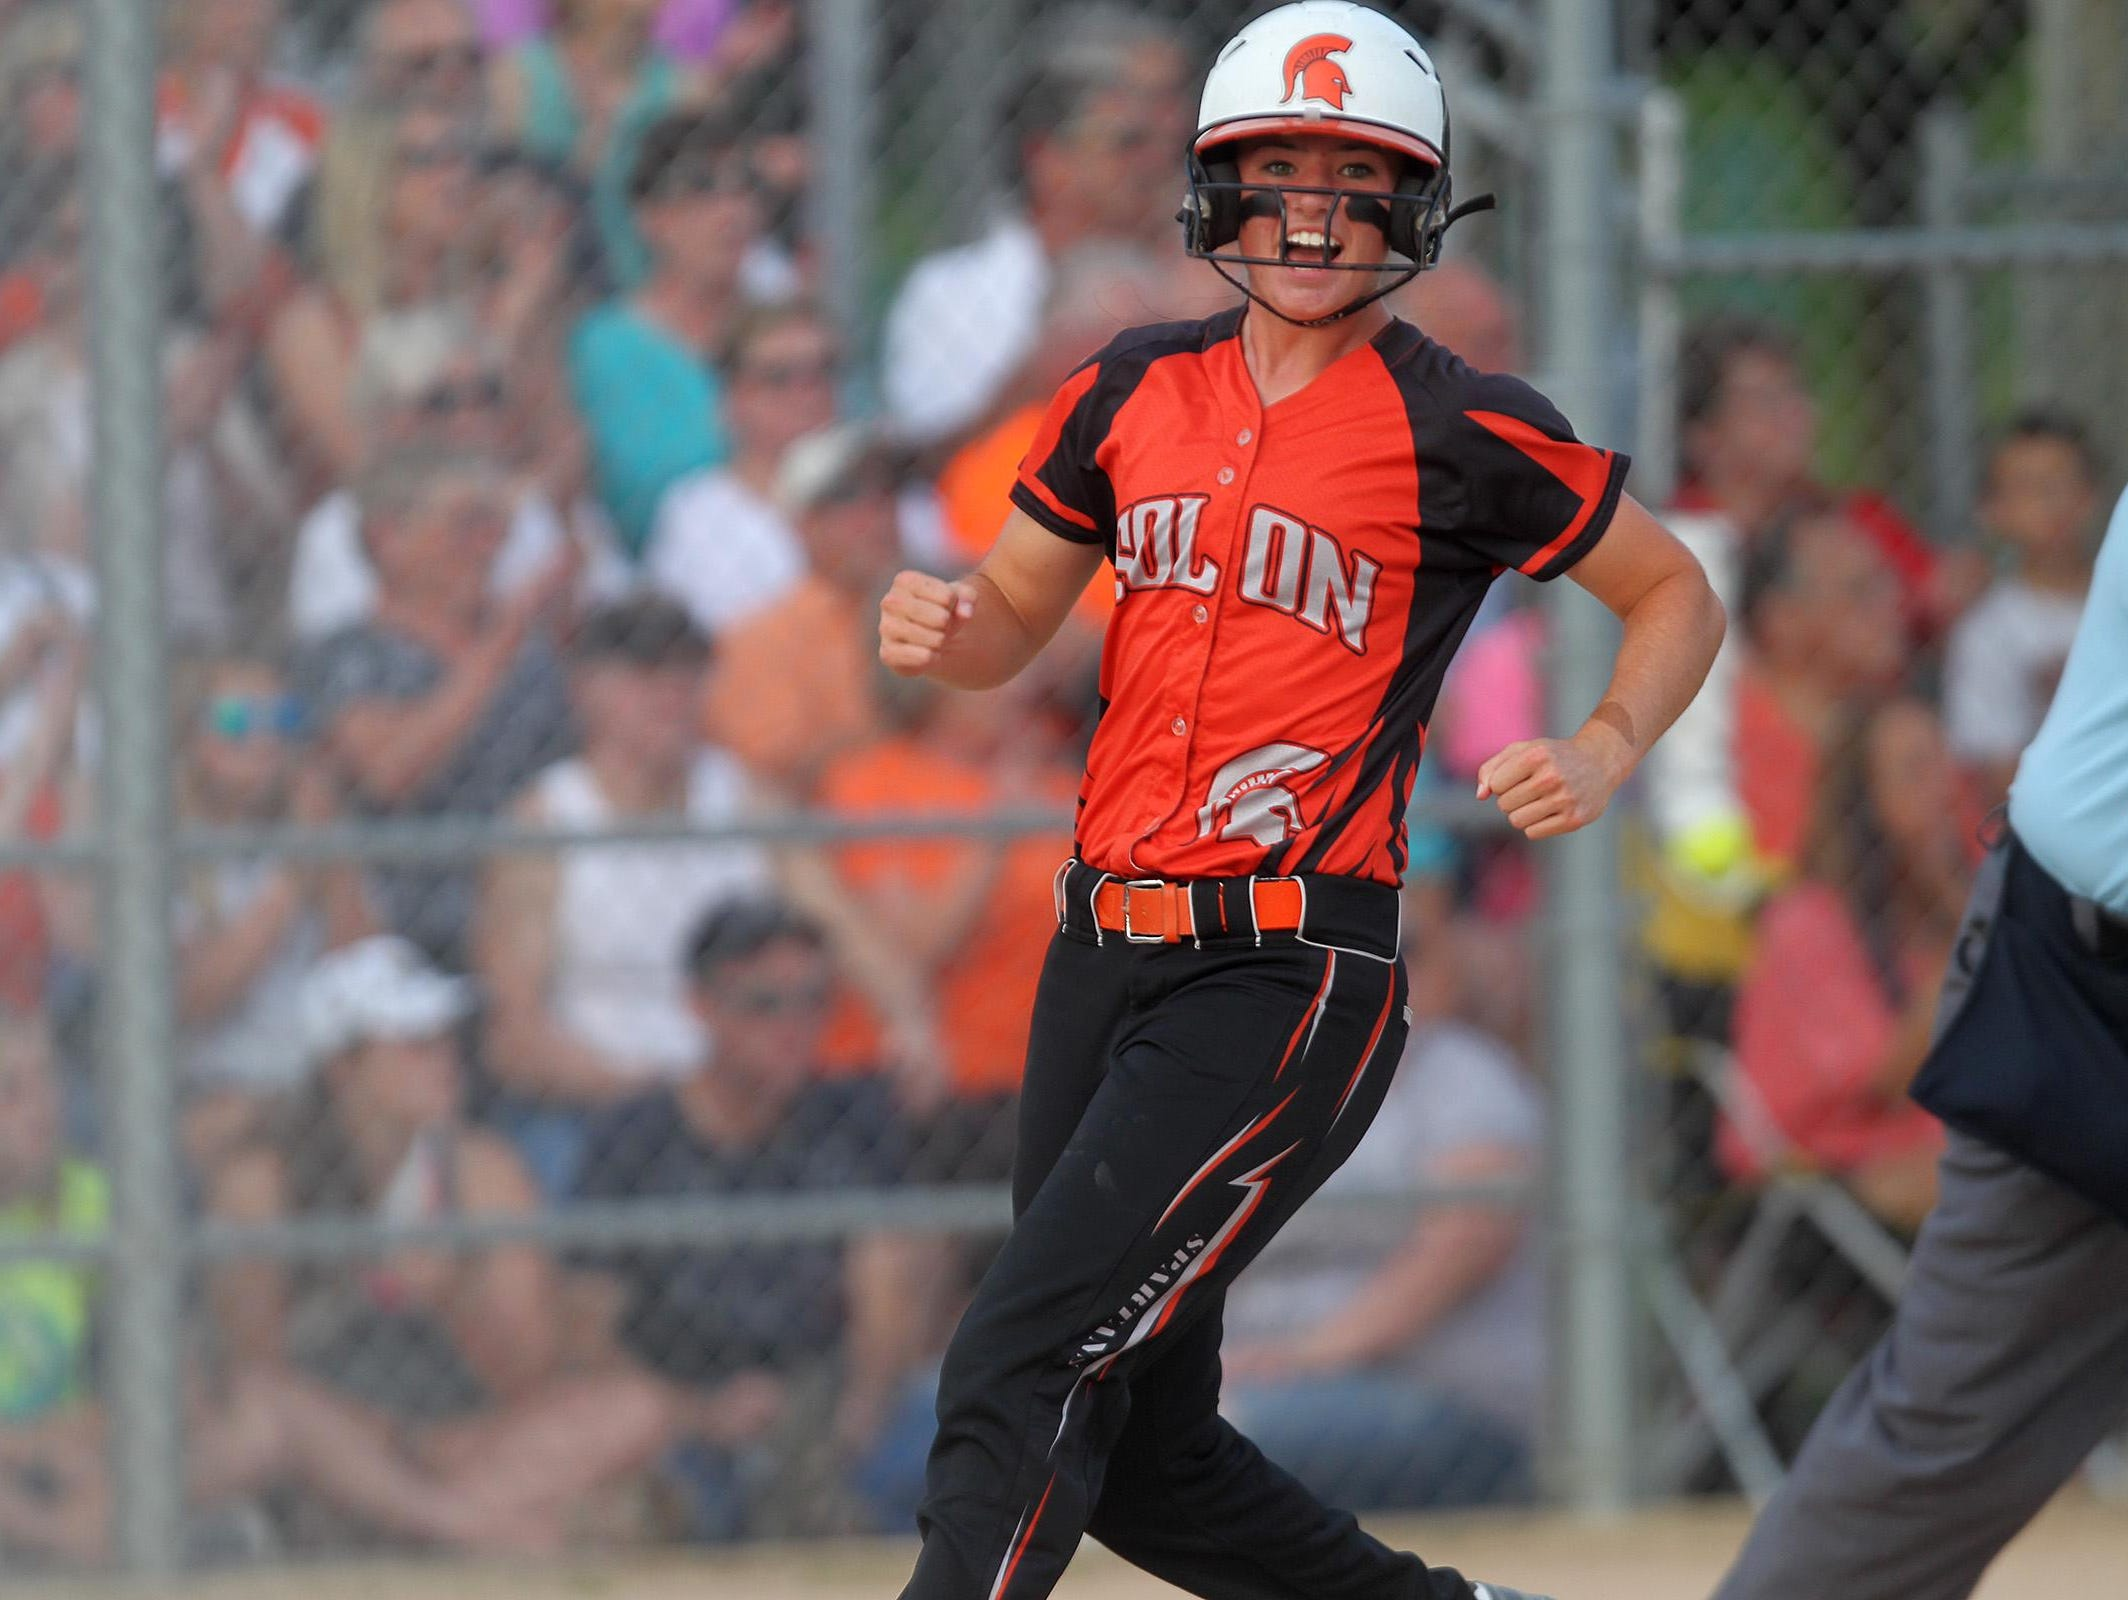 Solon's Sydney Lawson celebrates as she runs to home plate during the Spartans' regional game against Mid-Prairie at Solon on Friday, July 10, 2015.